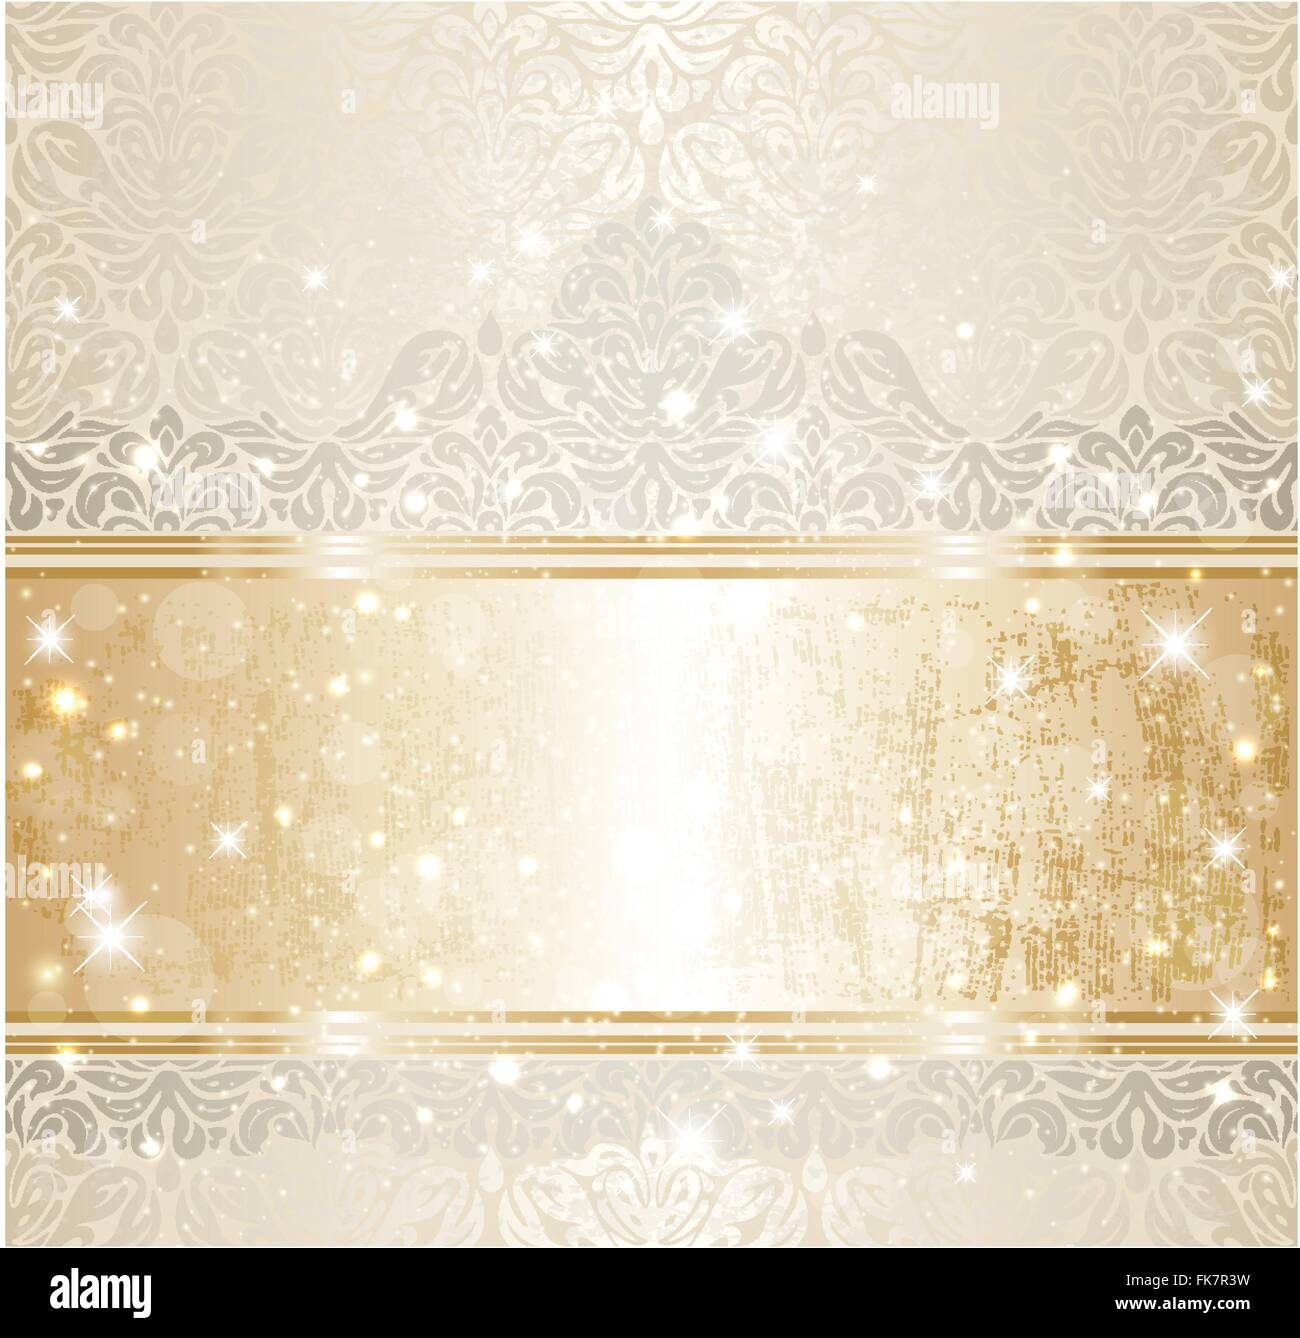 Bright Shiny Luxury Wedding Vintage Invitation Pattern Background With Gold And Silver